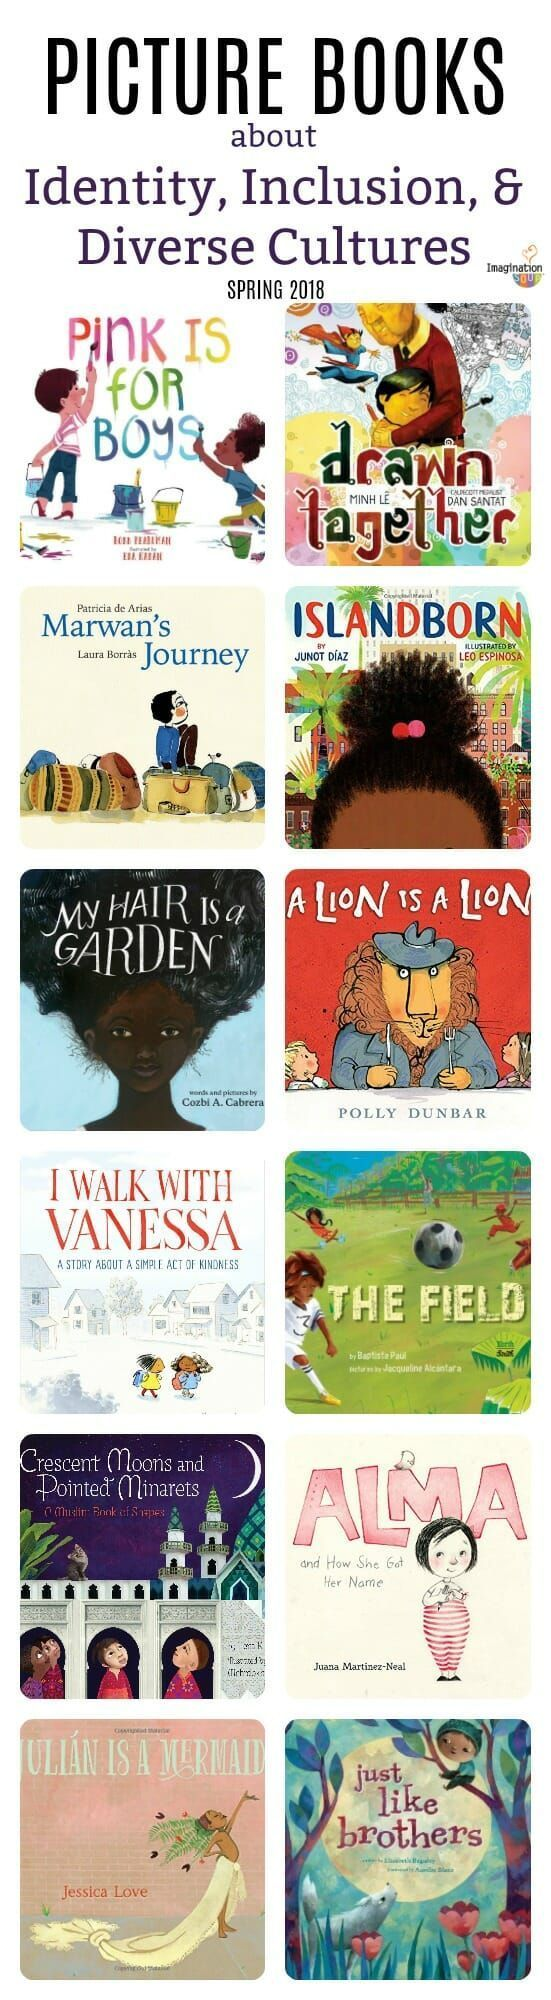 Spring 2018 Picture Books About Identity, Inclusion, & Diverse Cultures